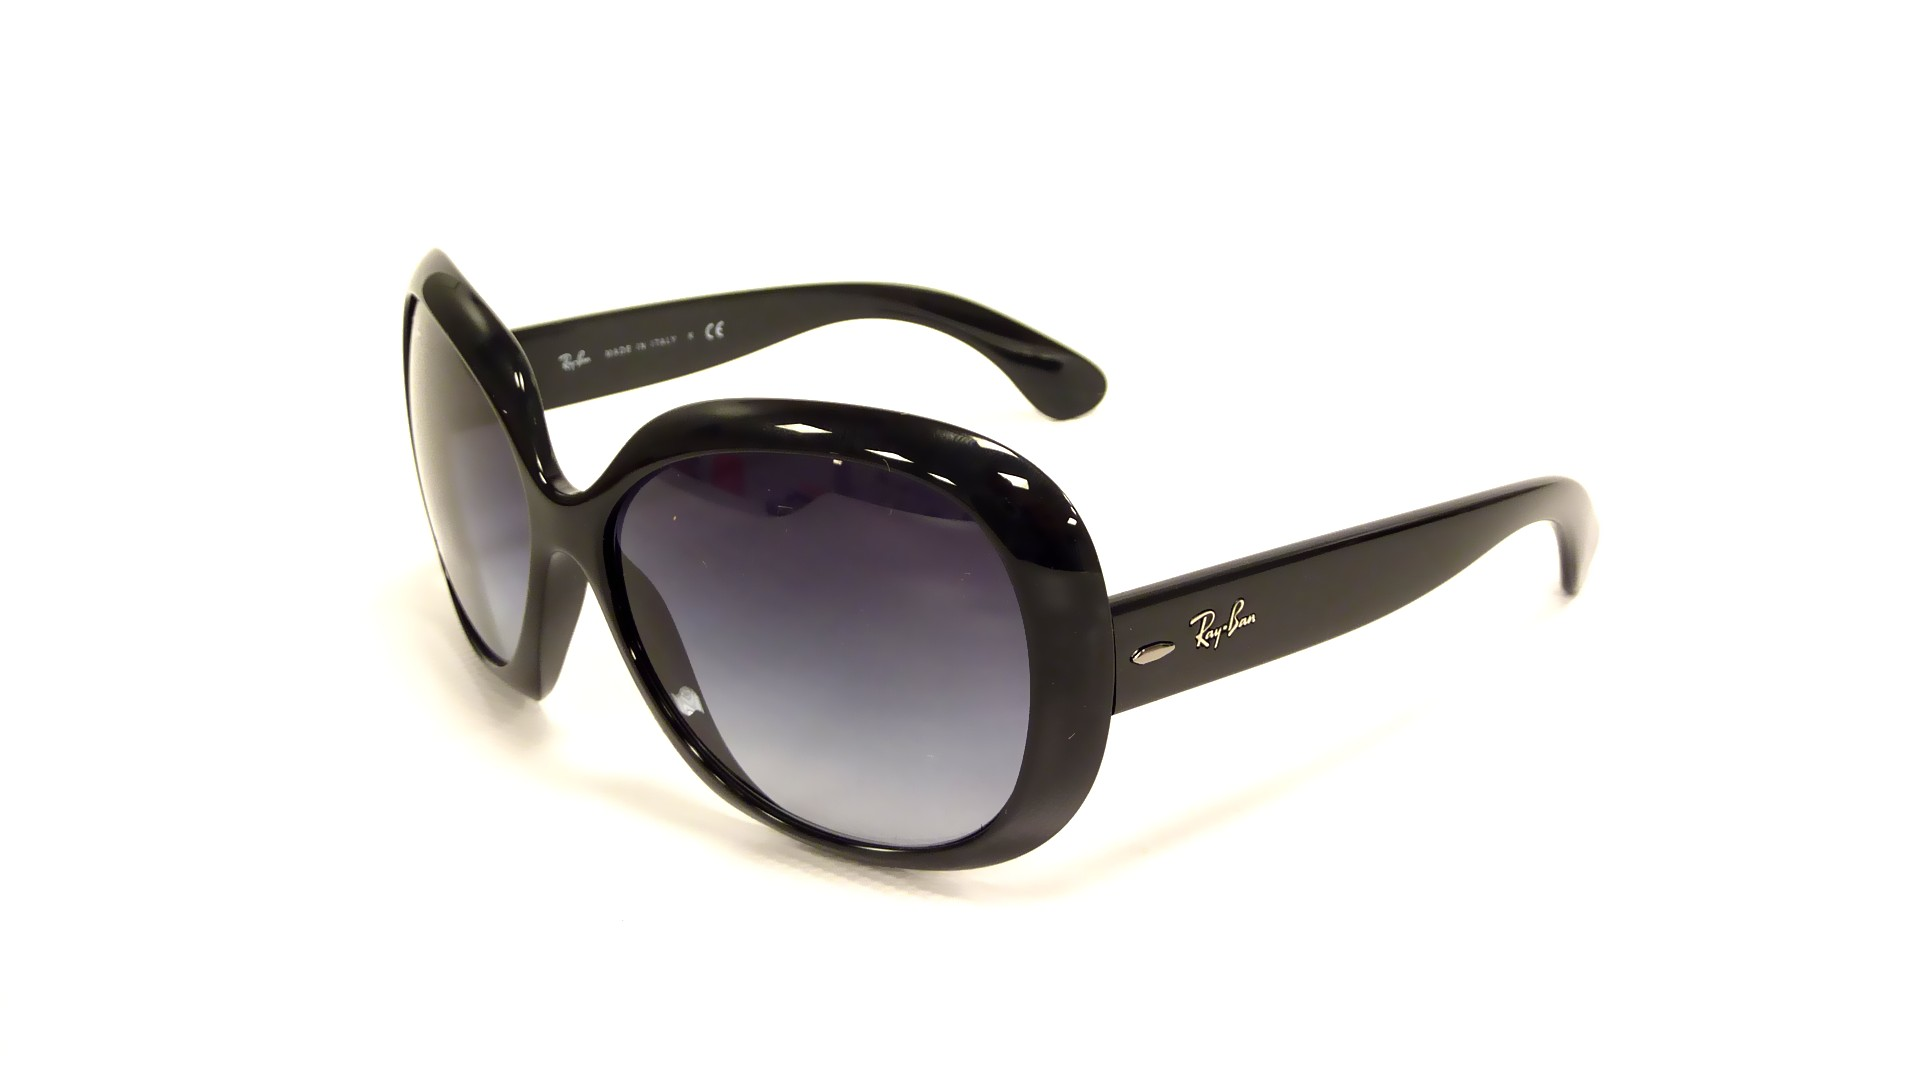 lunettes ray ban jackie ohh,ray ban jackie ohh femme indice